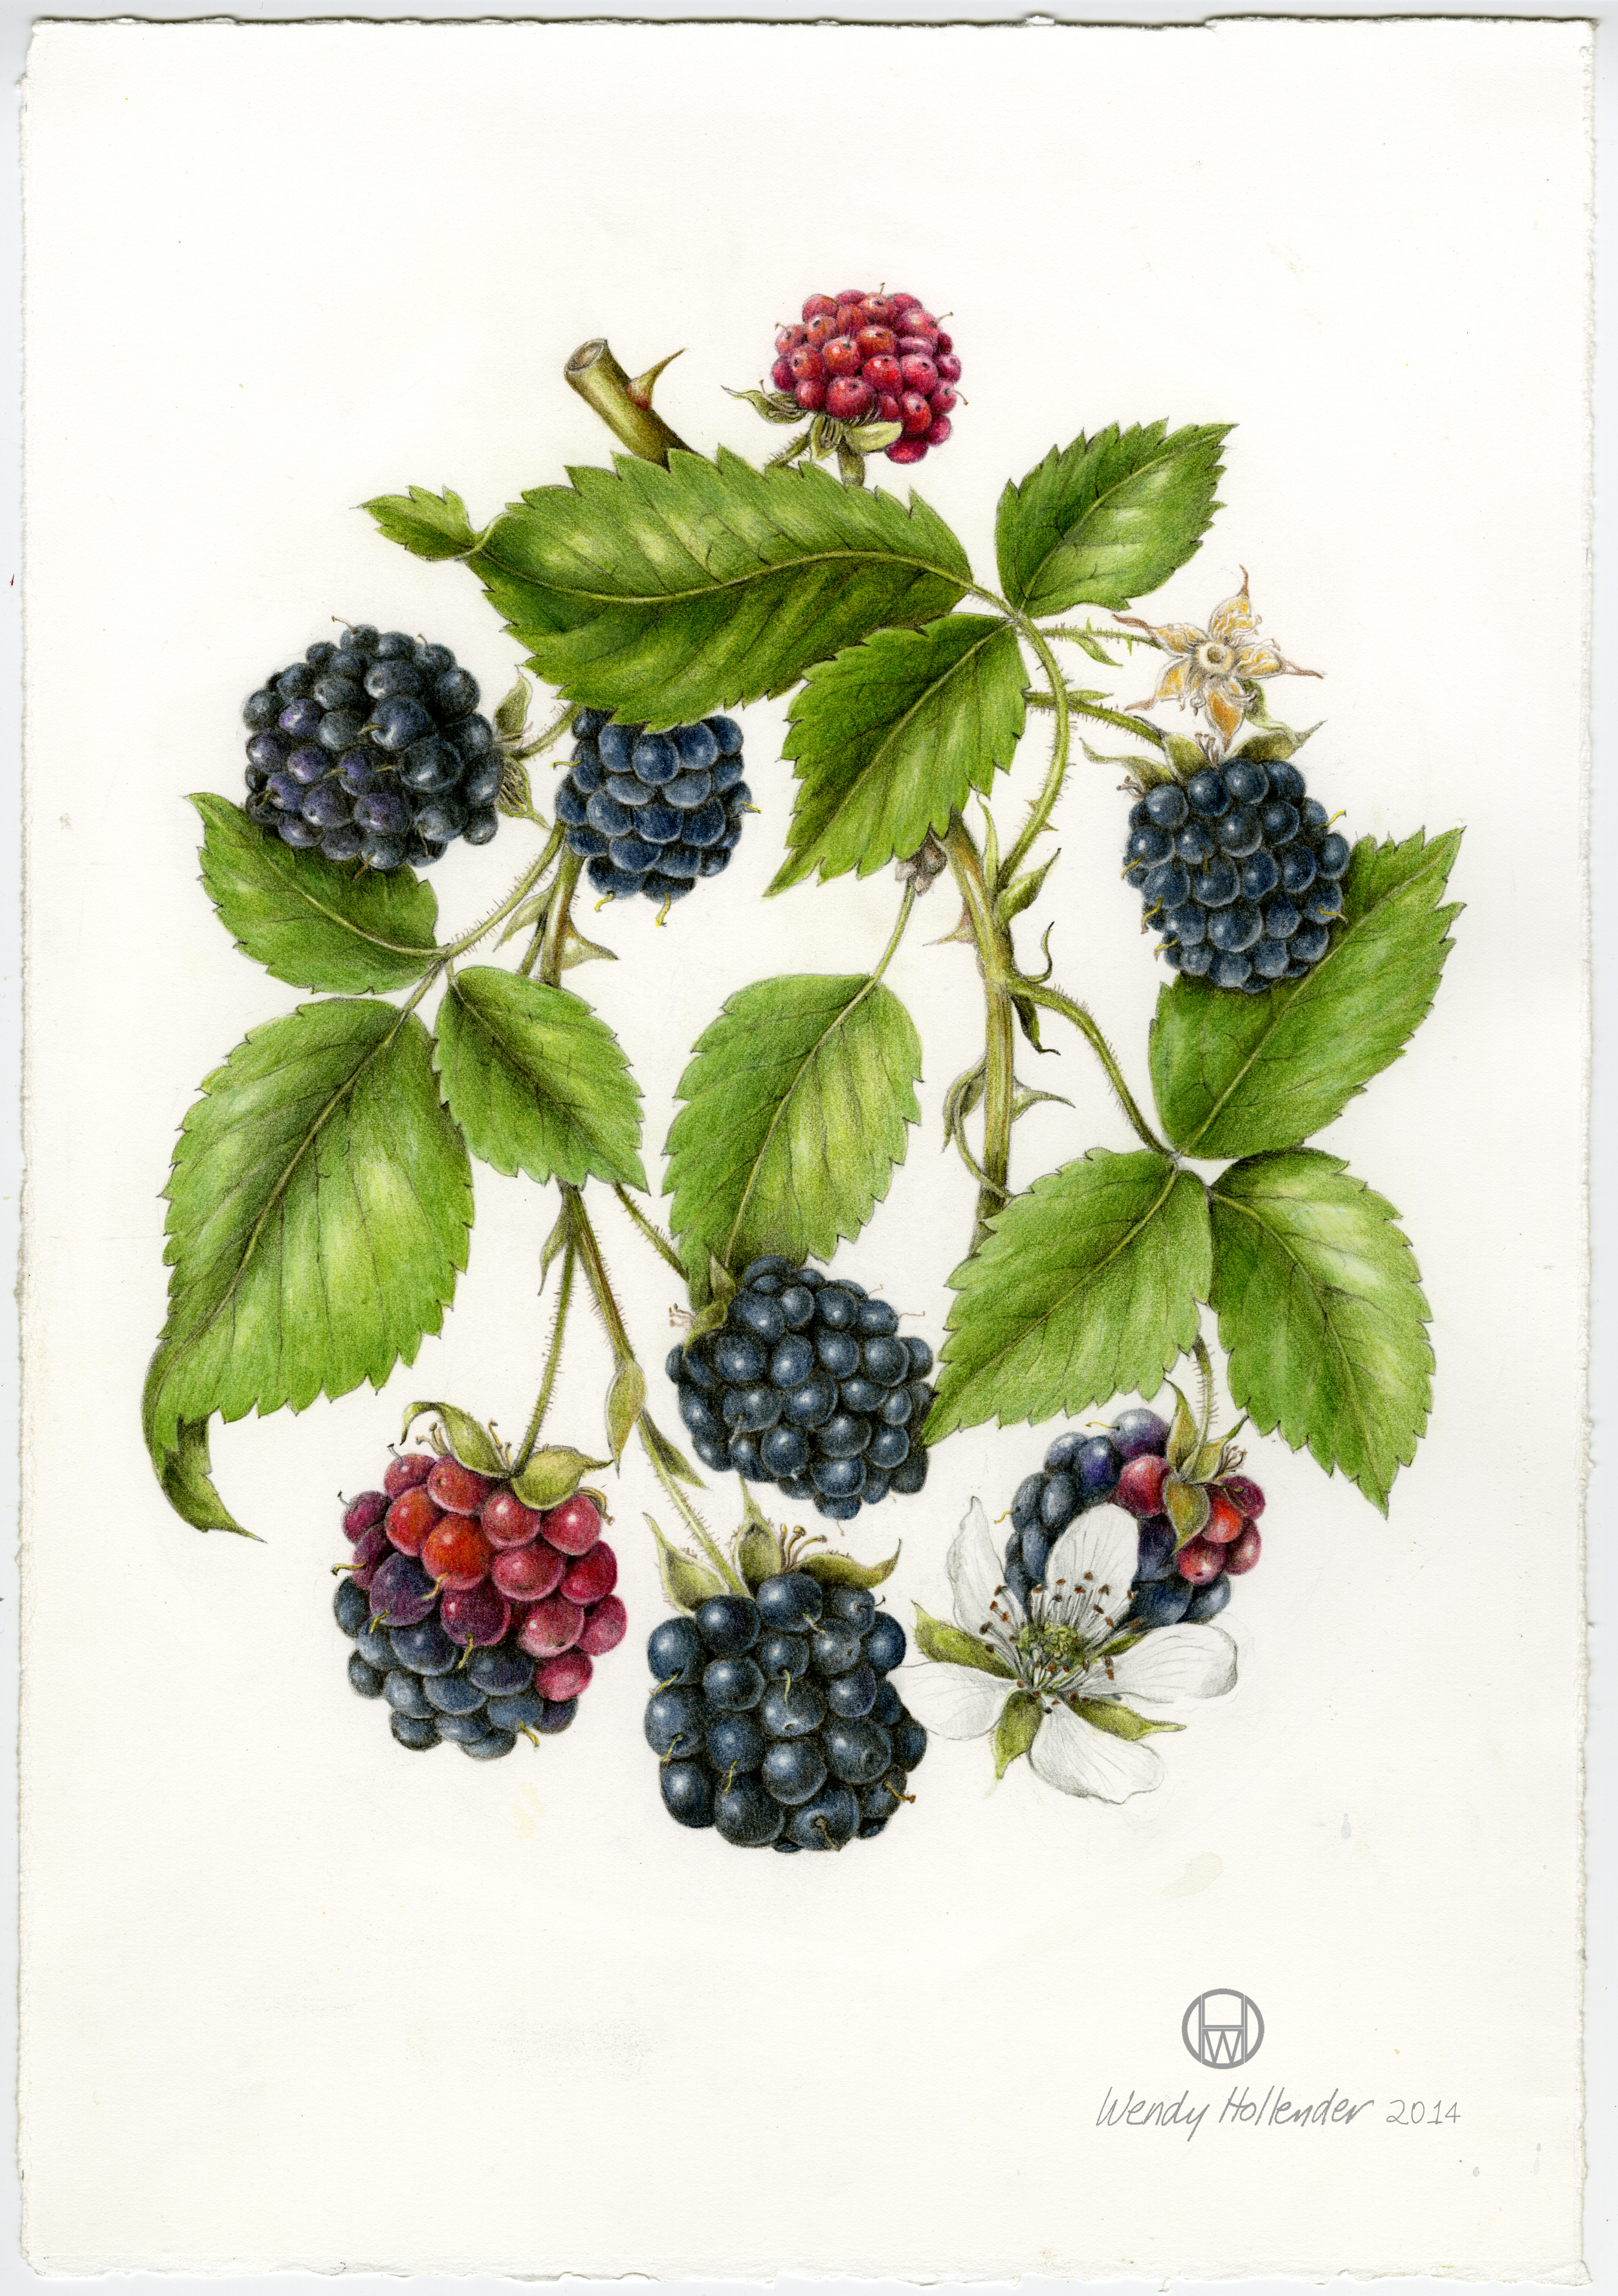 Bramble & Vine: Orignal Illustration of Black Raspberry